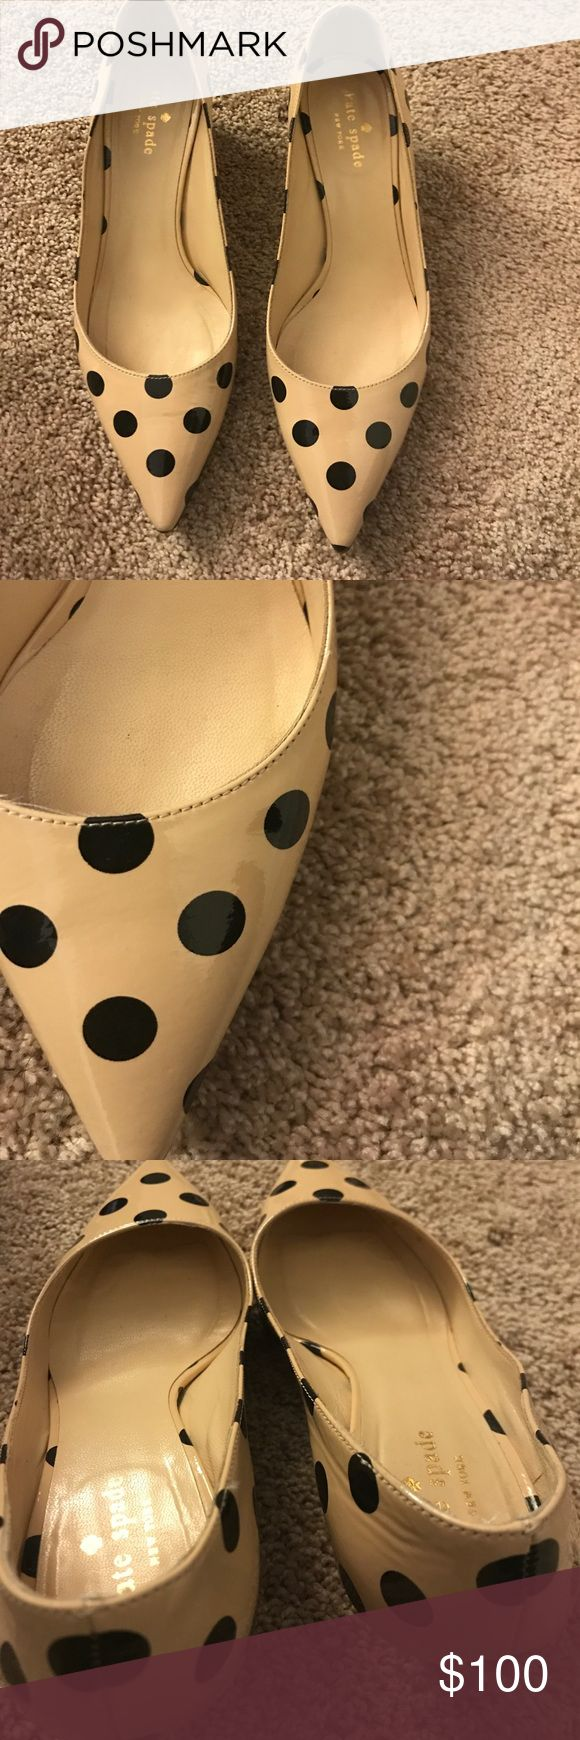 Ultra Chic Kate Spade ♠️ Polka Dot Kitten 👠 Heels Adorable and chic! Willing to negotiate price! kate spade Shoes Heels